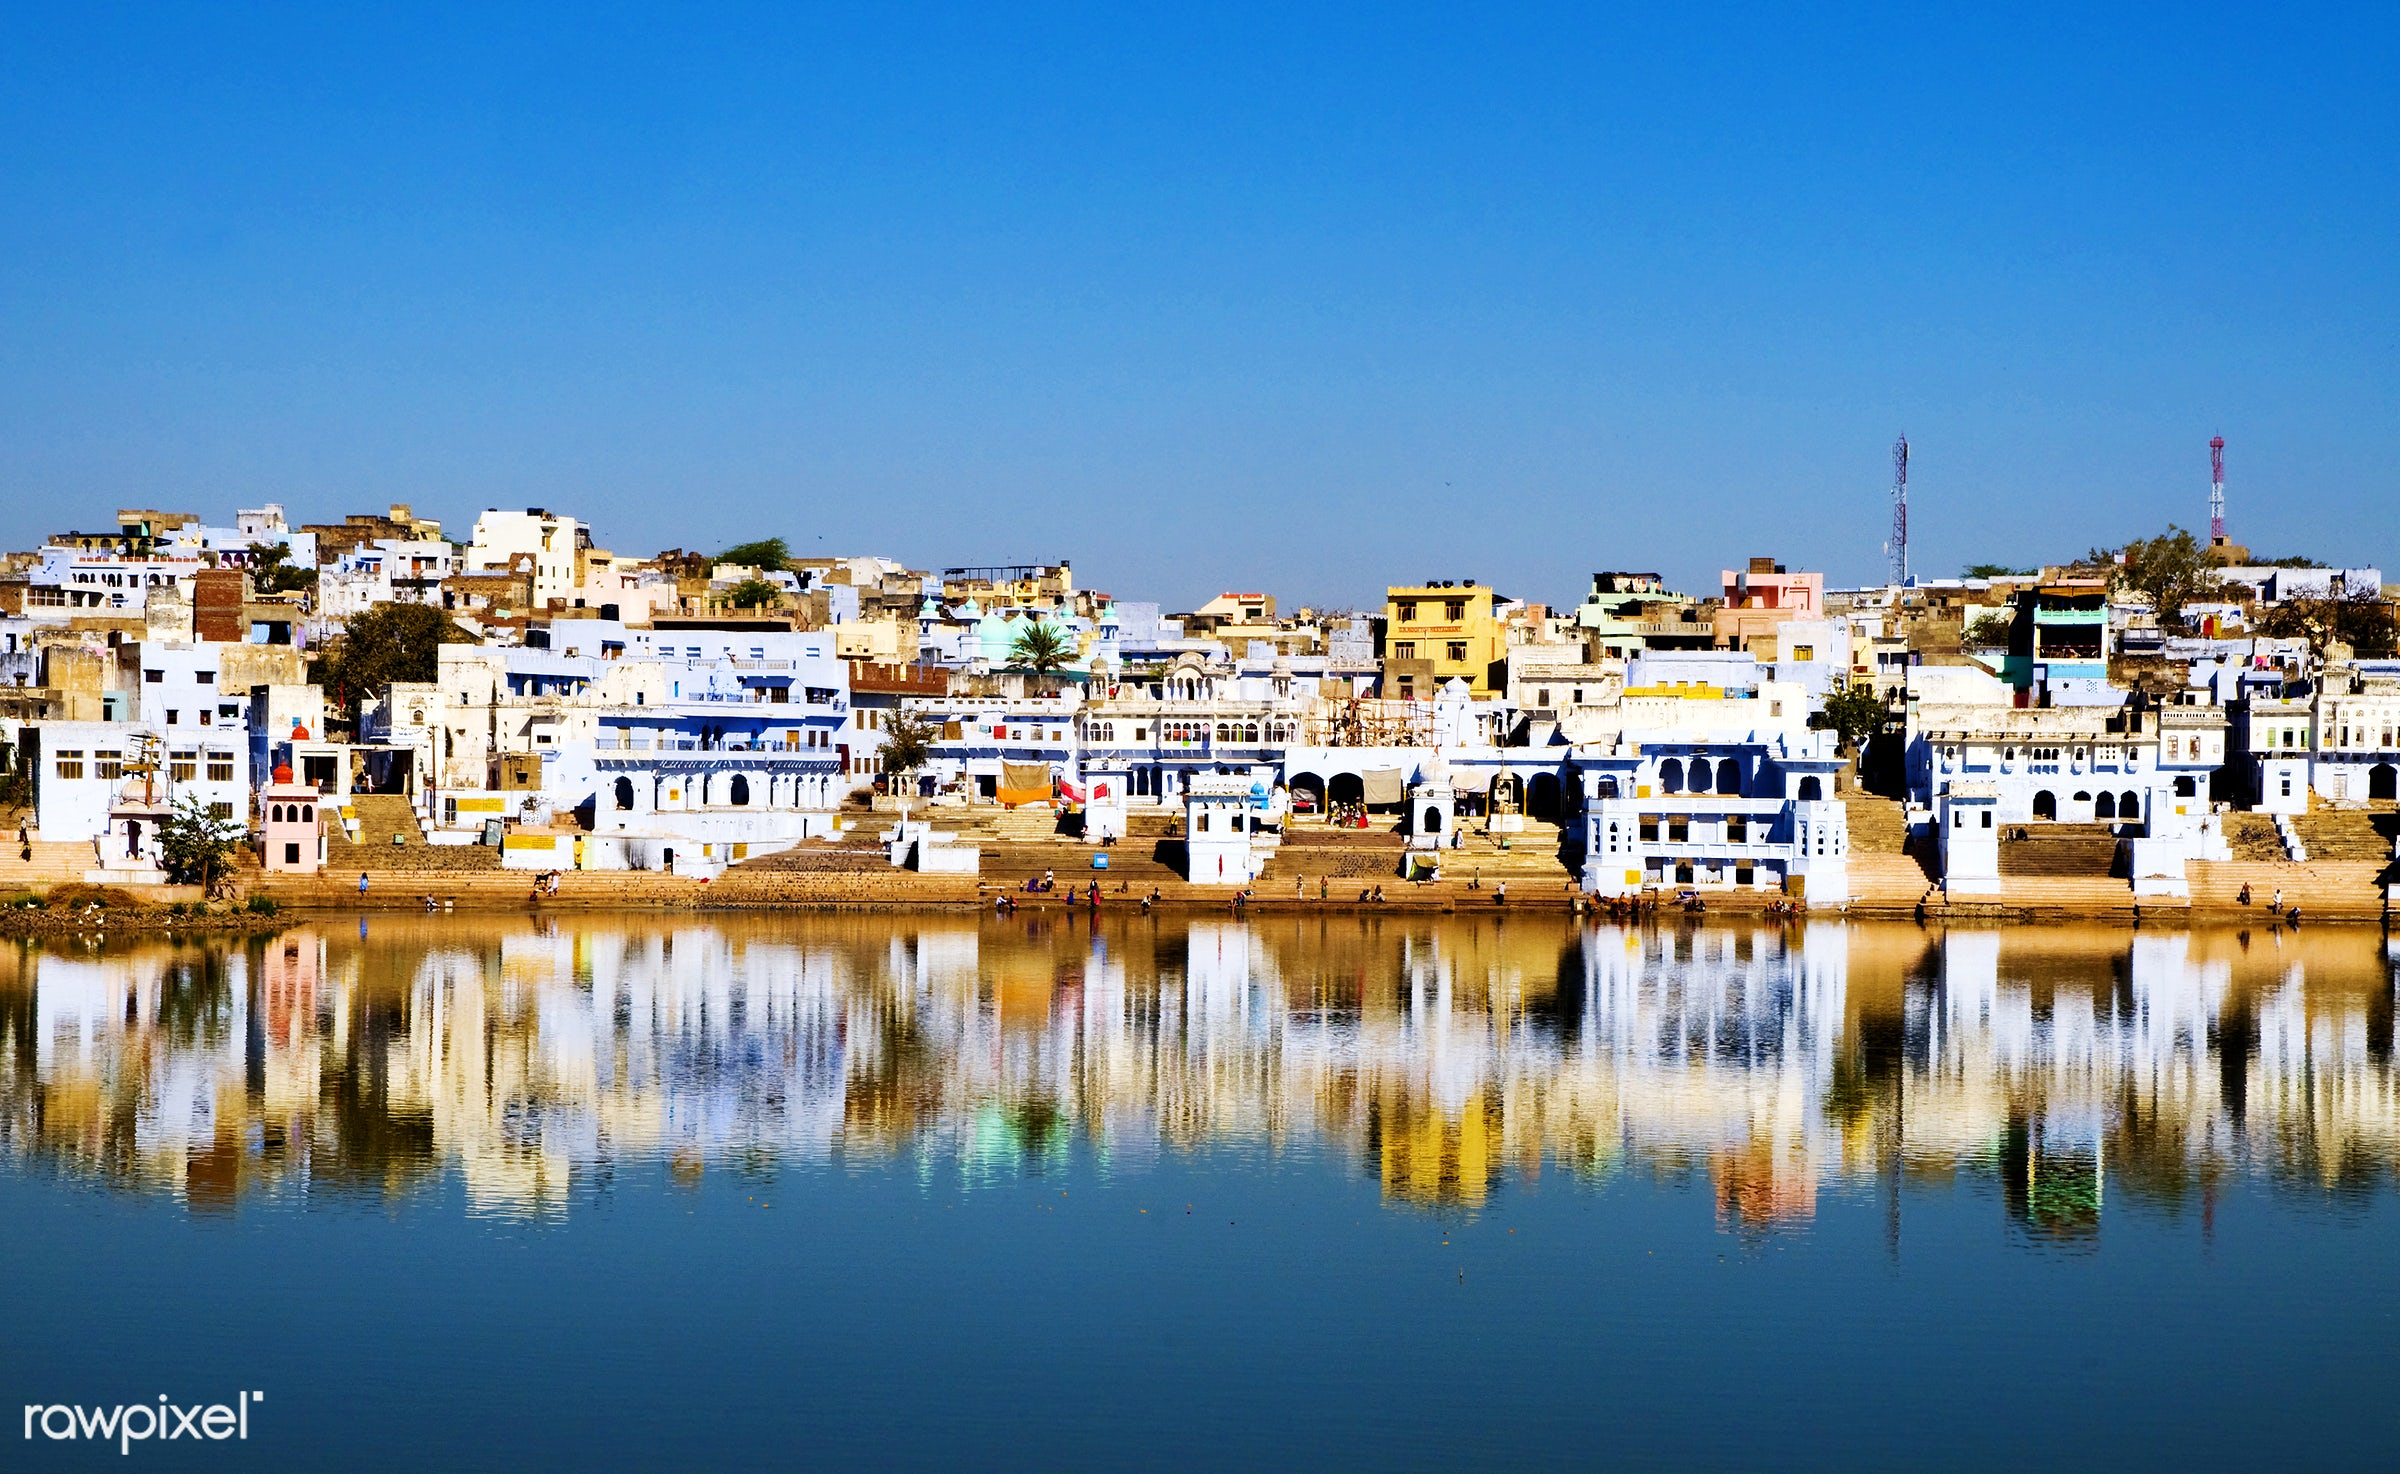 The holy Brahman town and lake in the early morning, Pushkar, Rajasthan, India - ancient, architecture, architecture and...